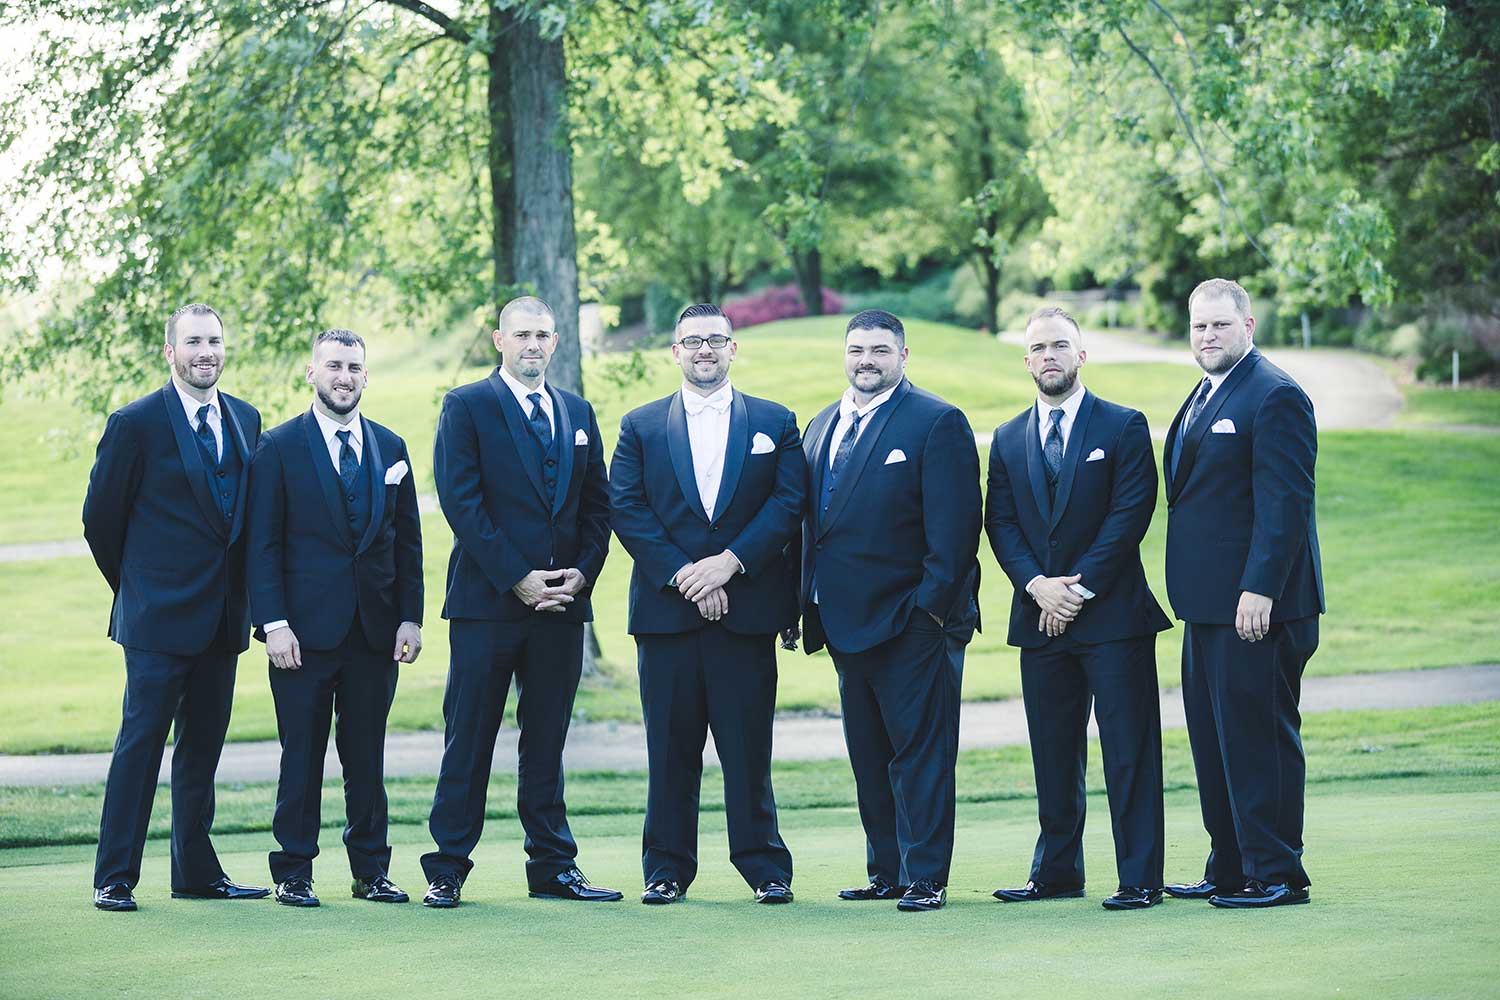 Group photo of grooms party